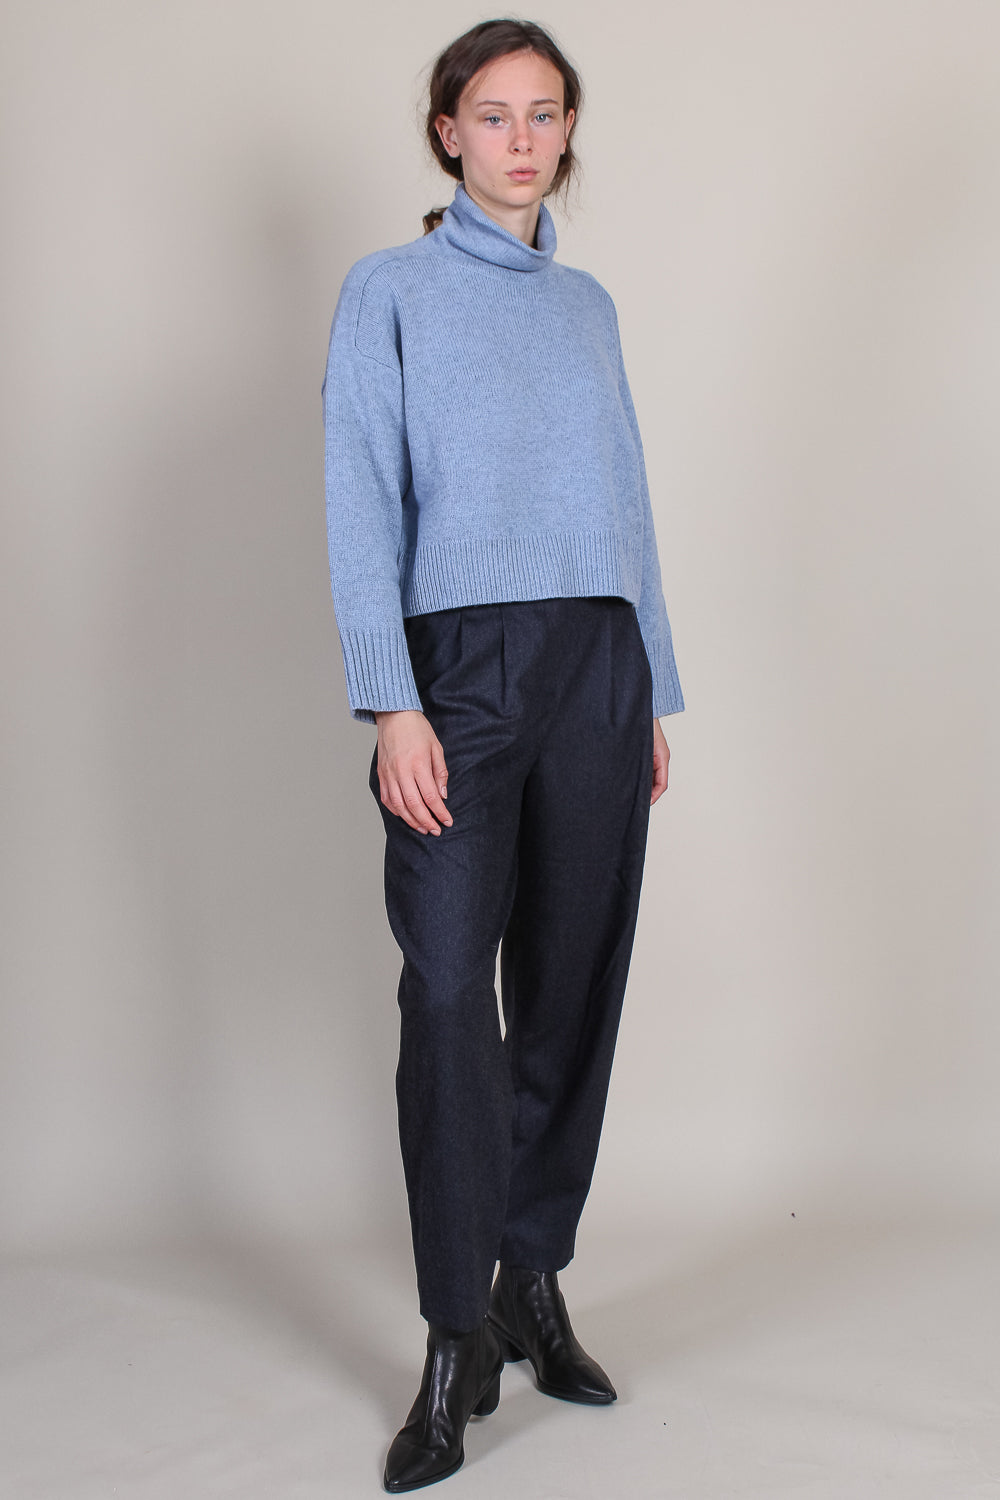 Stintino Collar Sweater in Blue Melange